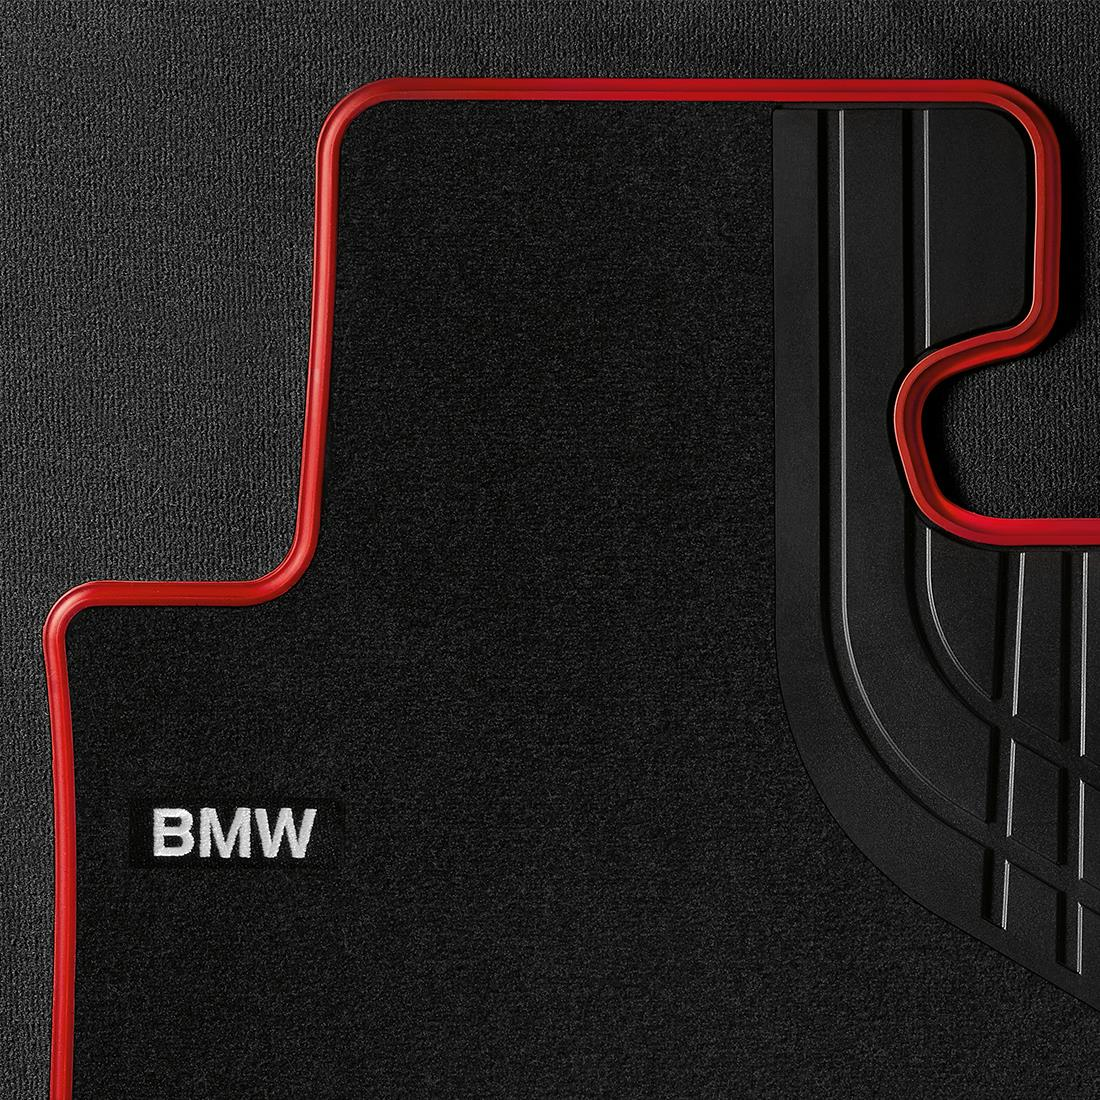 BMW Carpeted Floor Mats - Sport Line